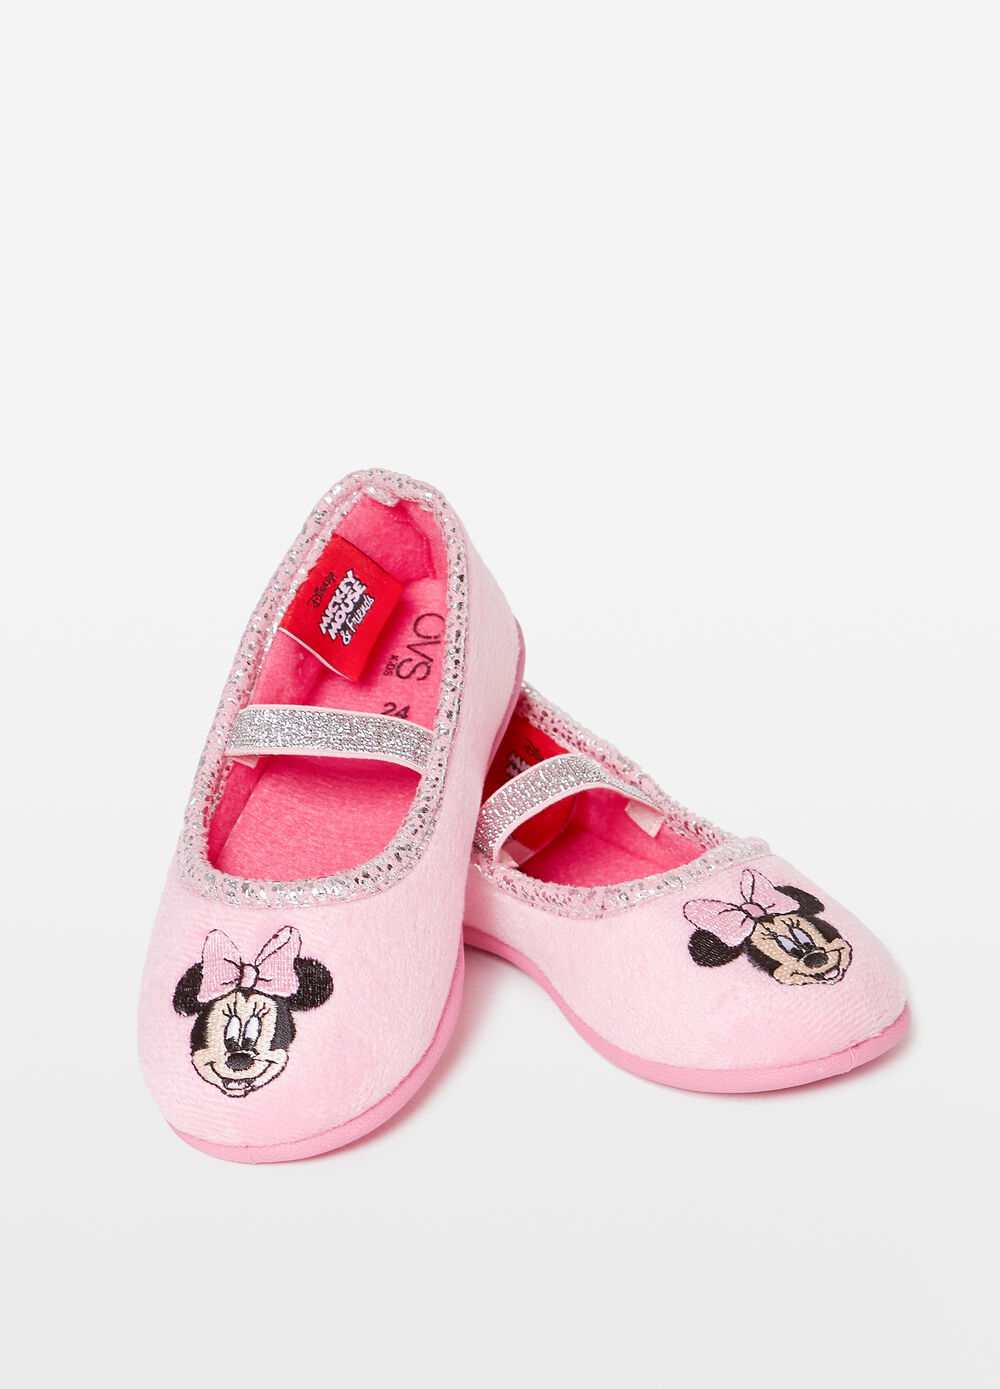 Ballerina slippers with Minnie Mouse patch